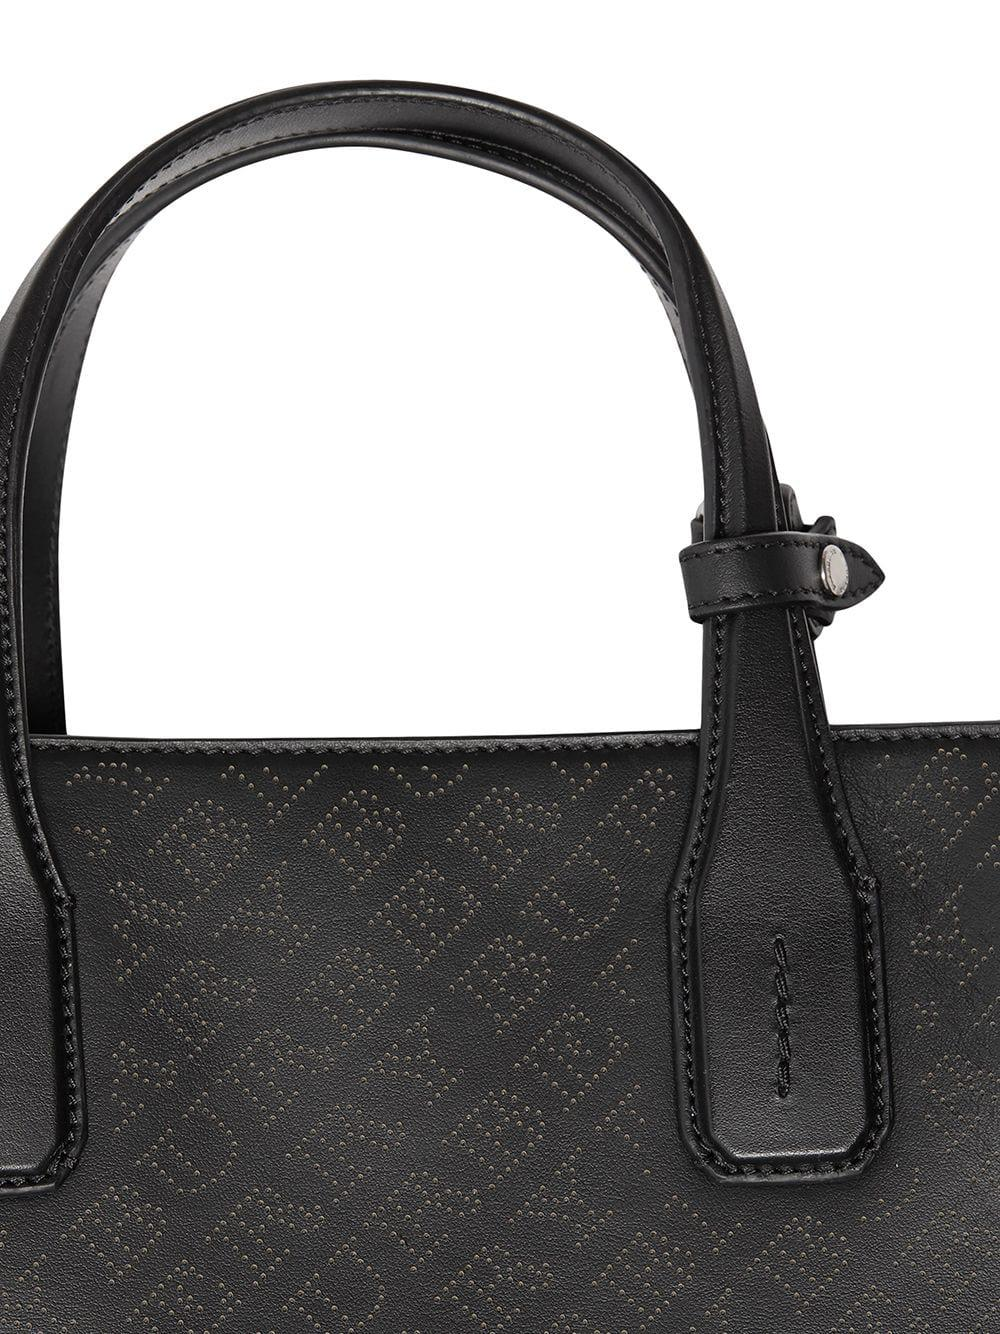 10d133923487 Burberry The Medium Banner In Perforated Logo Leather in Black - Lyst